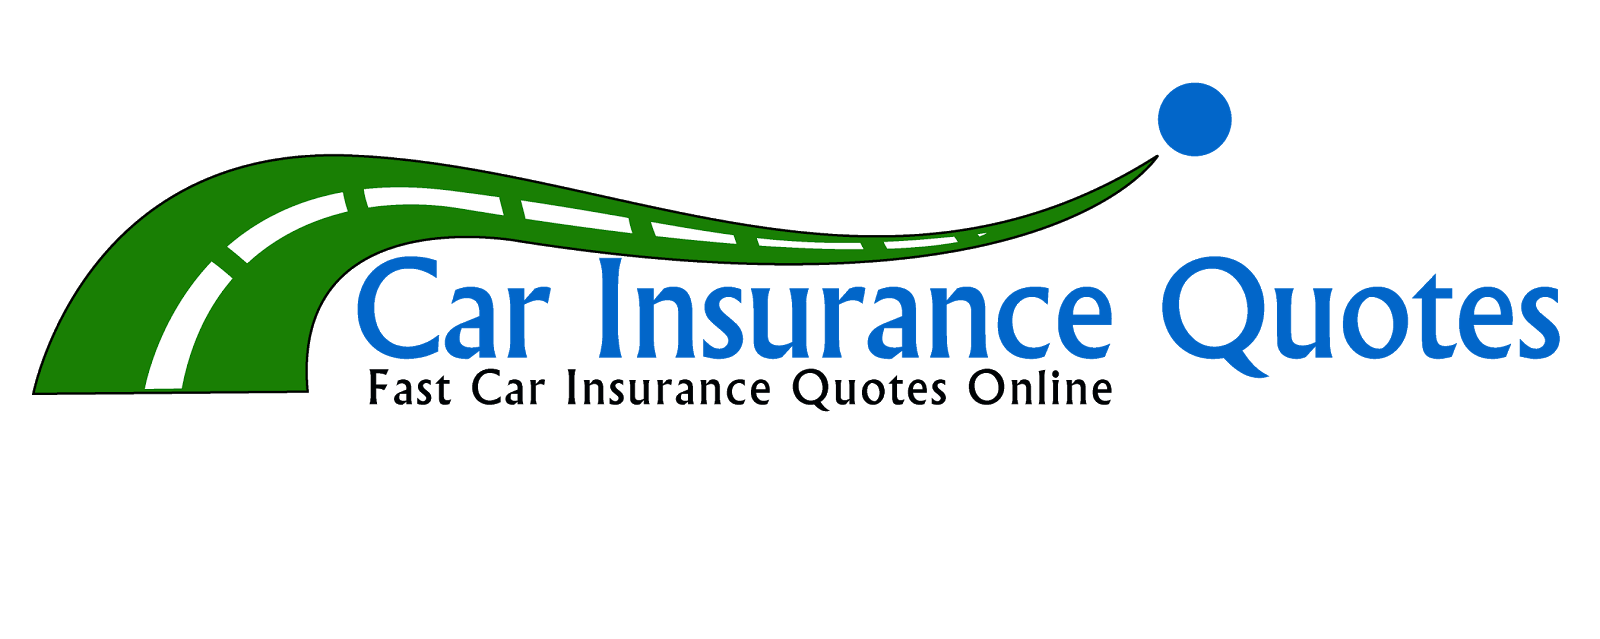 Online Insurance Quotes Brilliant Free Car Insurance Quotes Online  Places To Visit  Pinterest . Decorating Inspiration